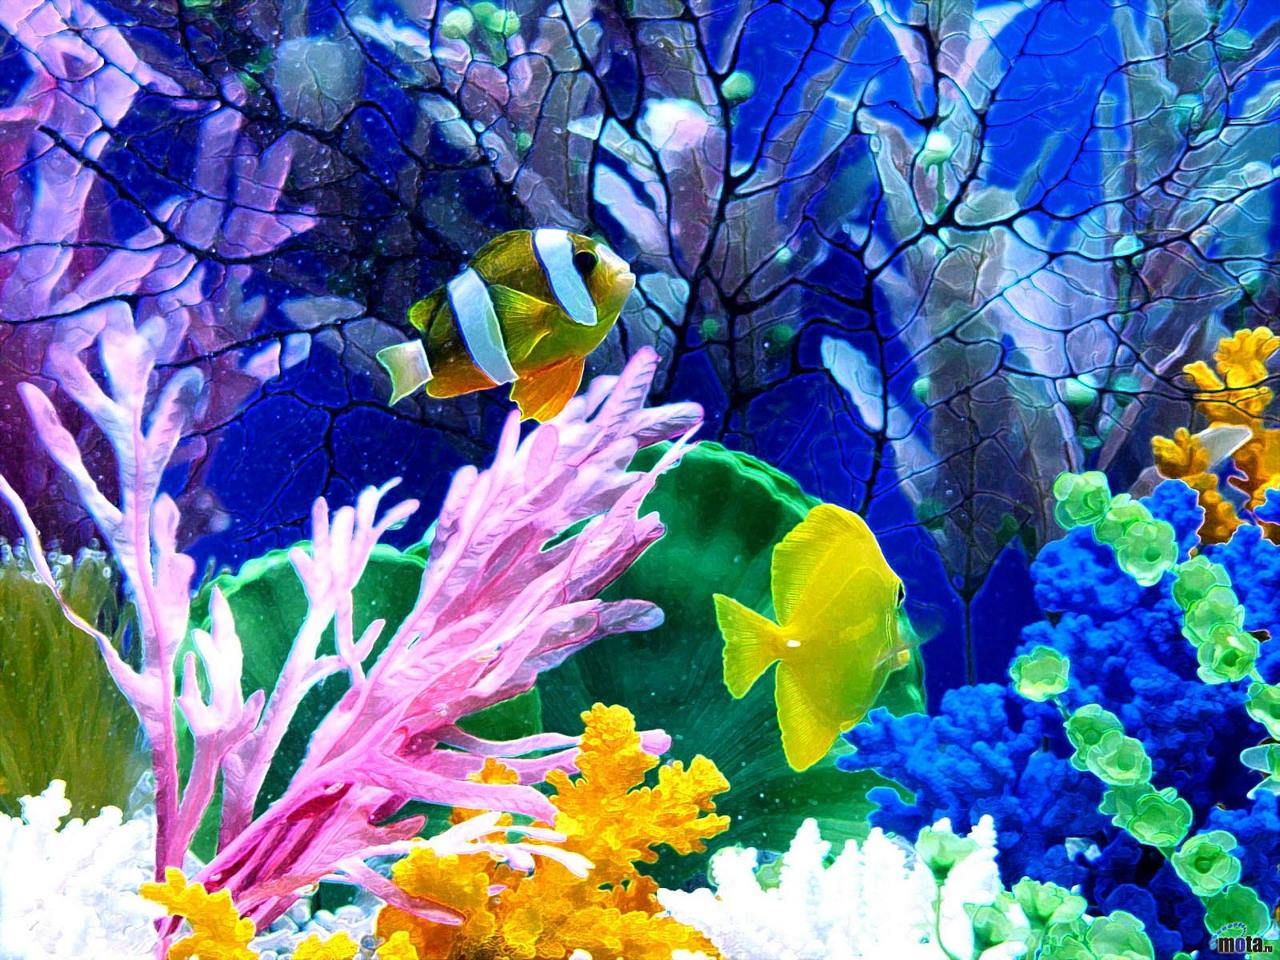 aquarium wallpaper hd - photo #2